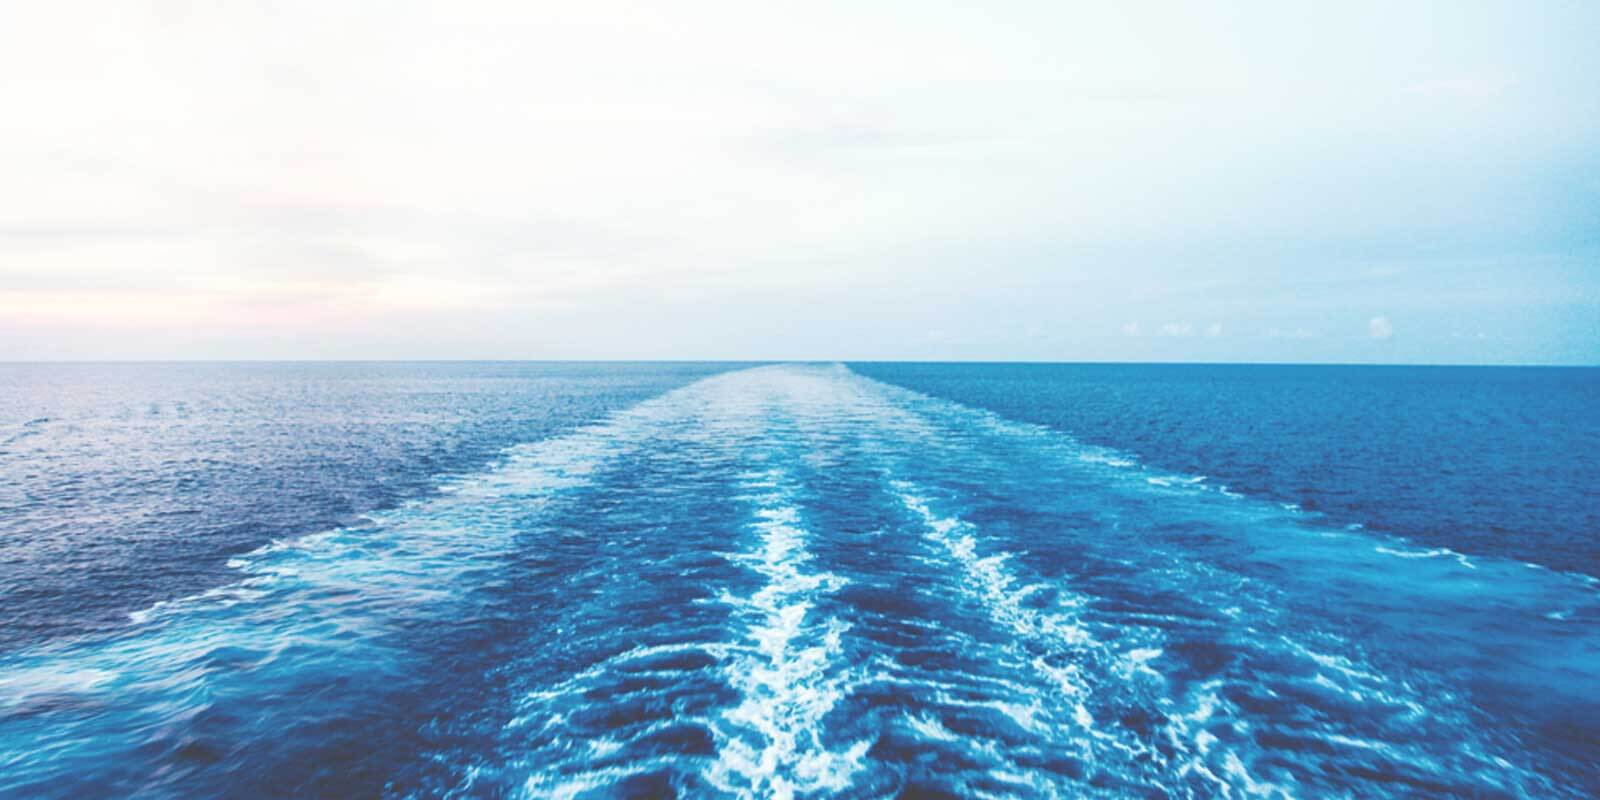 Landscape view of an open ocean with the wake trail from a cruise ship.